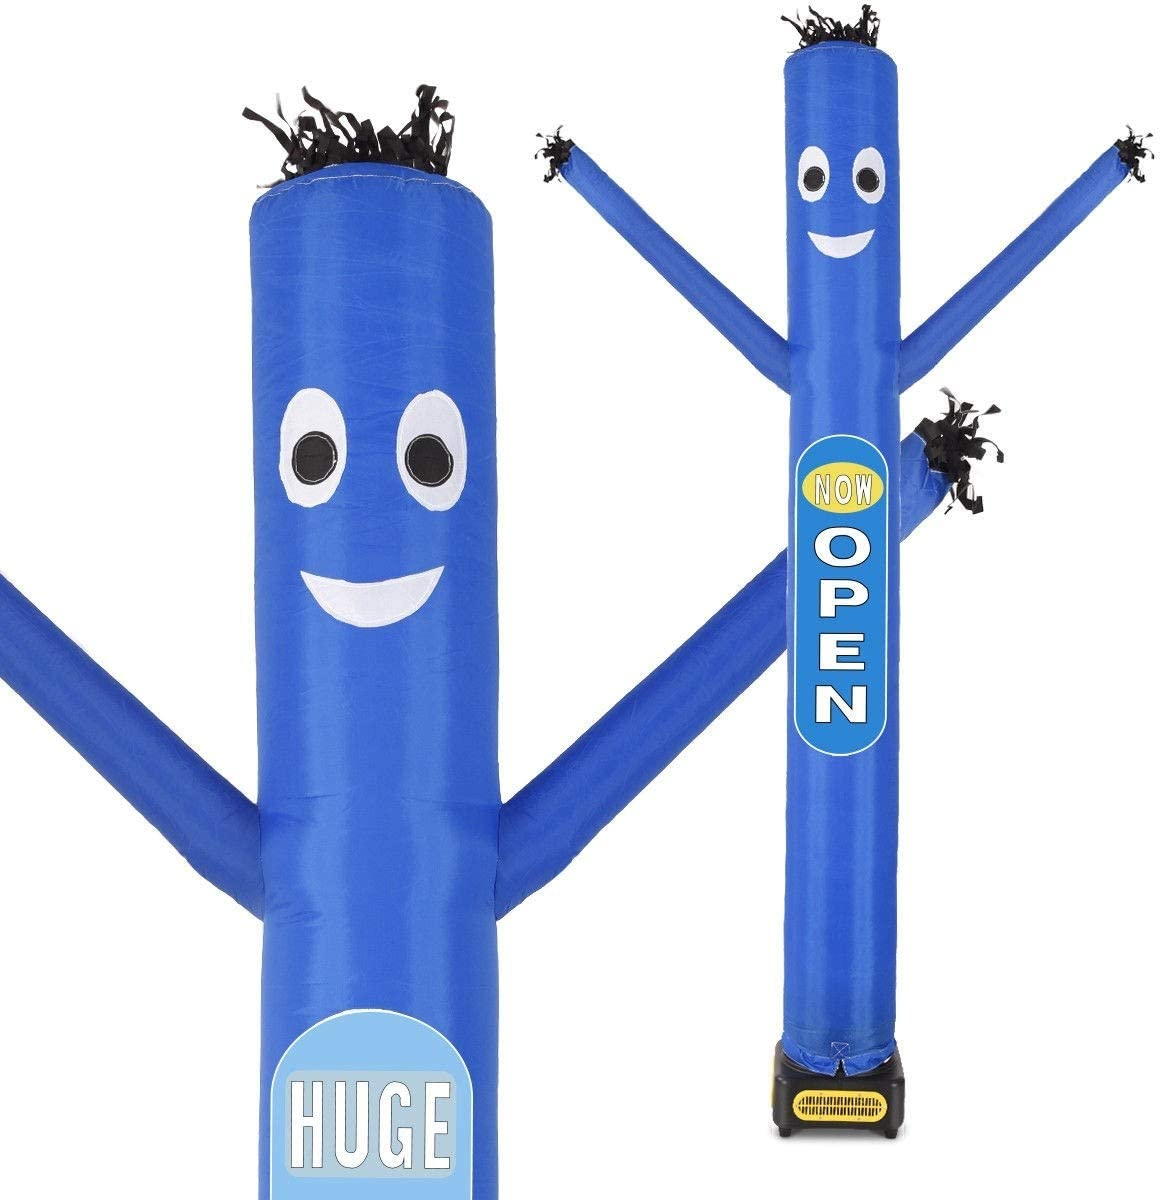 Multi-Functional Commercial Promote Event Your Business Outdoor Display Inflatable Air Dancer Puppet Tube 10ft with Blower Blue